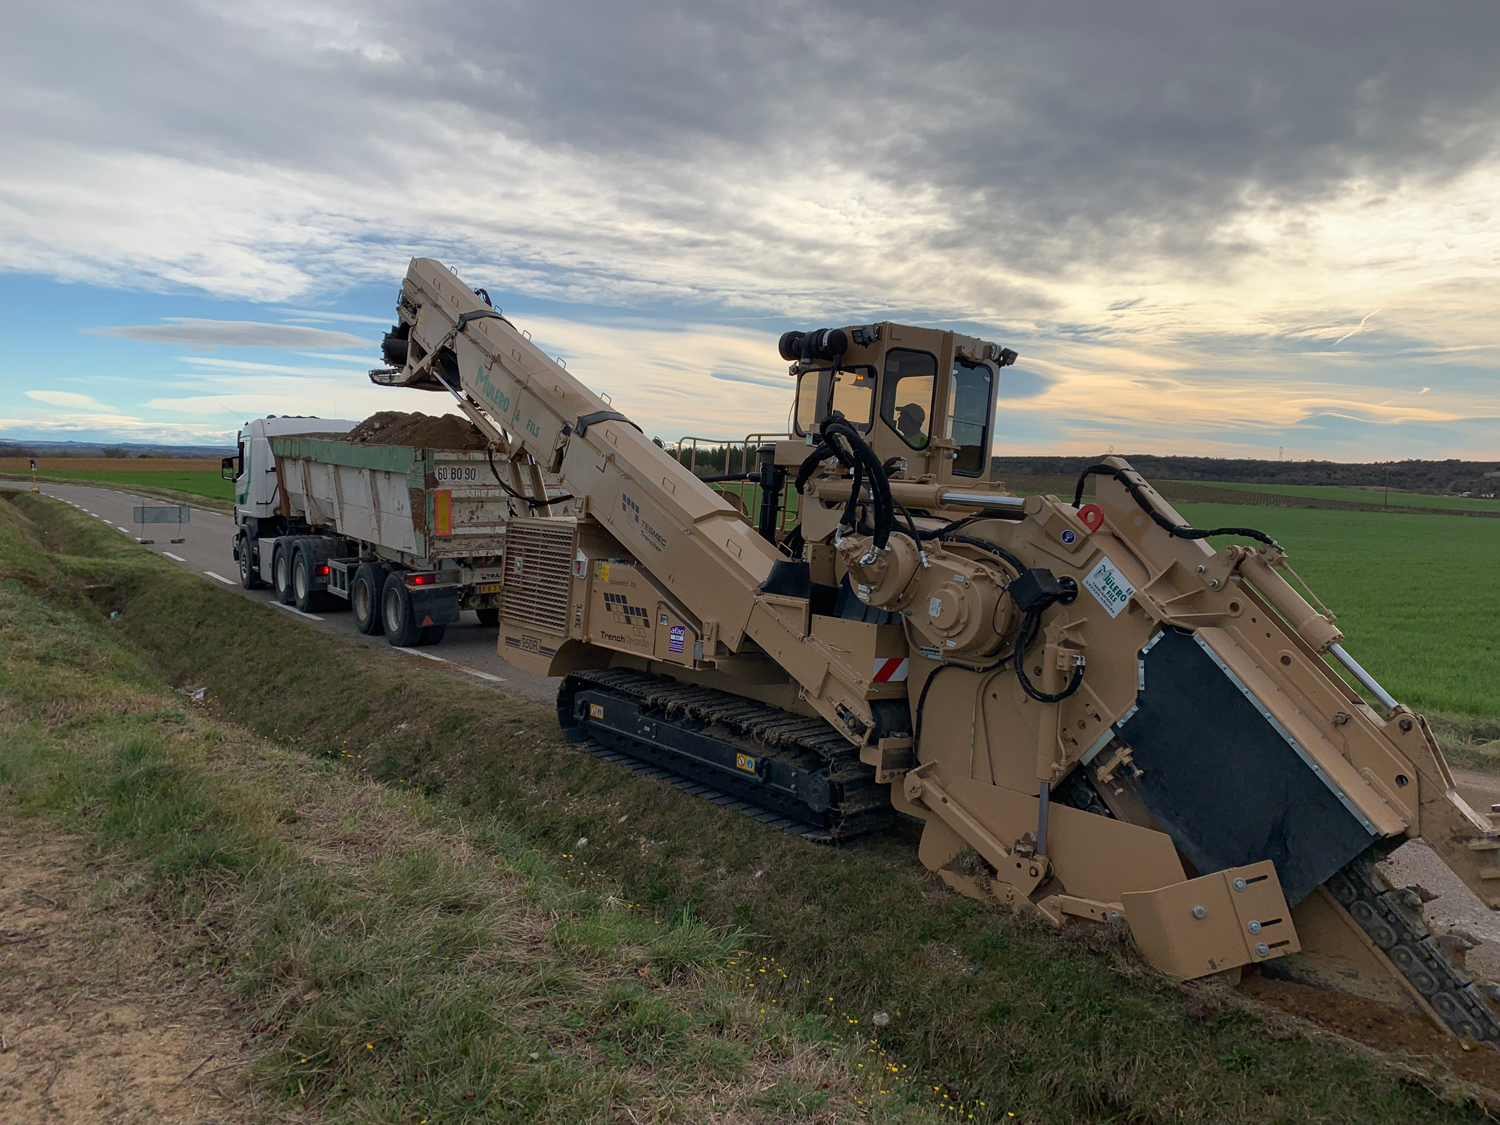 950R Compact-sized trencher with truck loading conveyor Tesmec